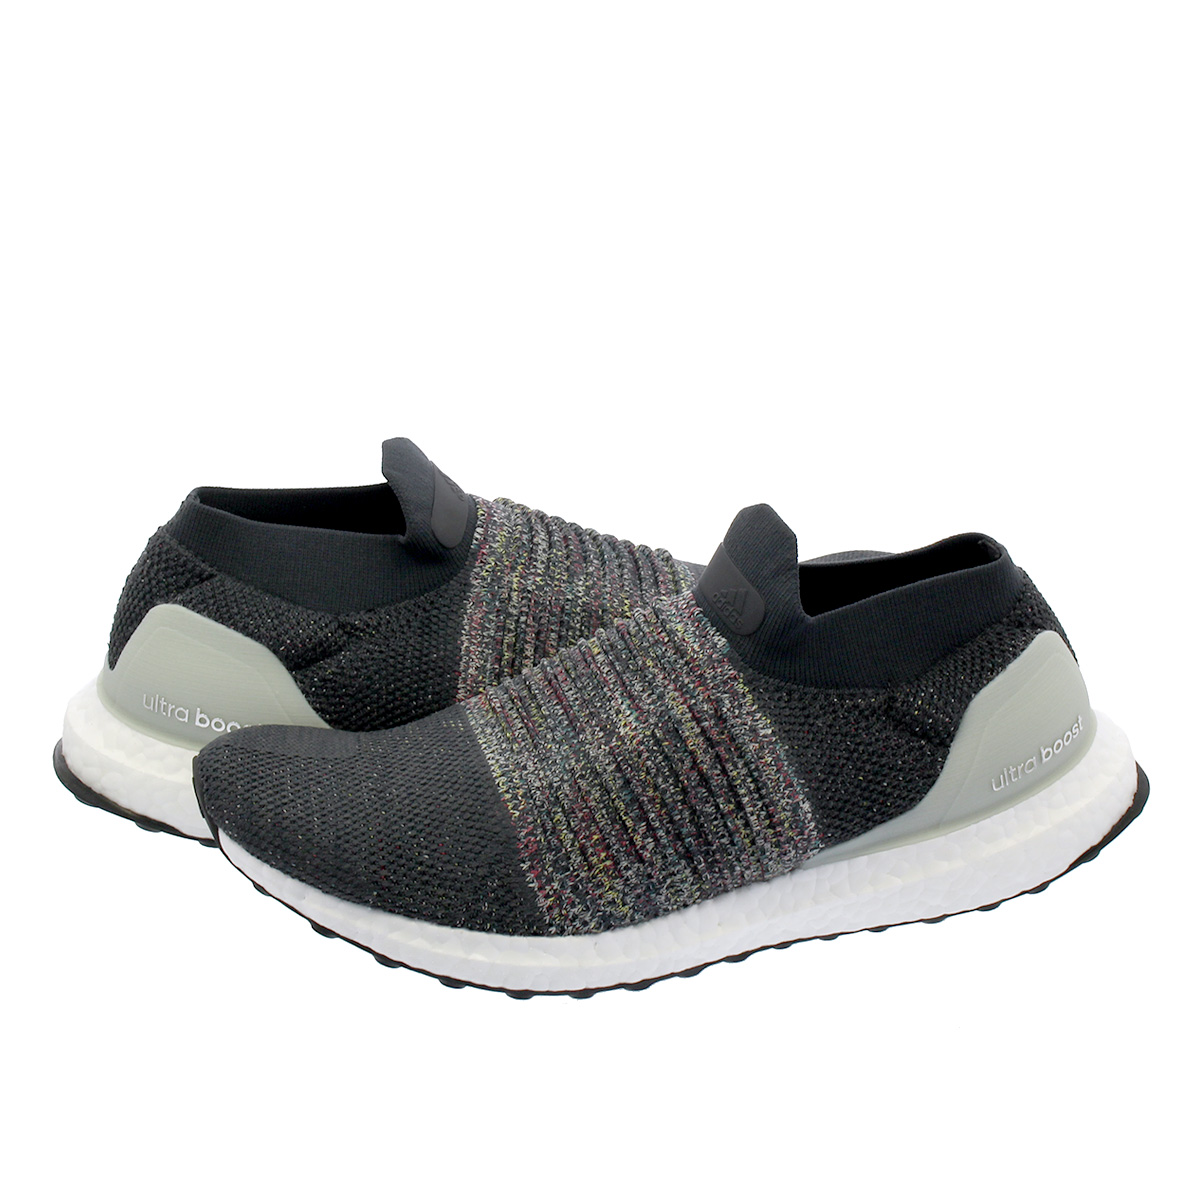 0a71775d4 adidas UltraBOOST LACELESS Adidas ultra boost raceless CARBON SOLID  GREY ASH SILVER cm8267